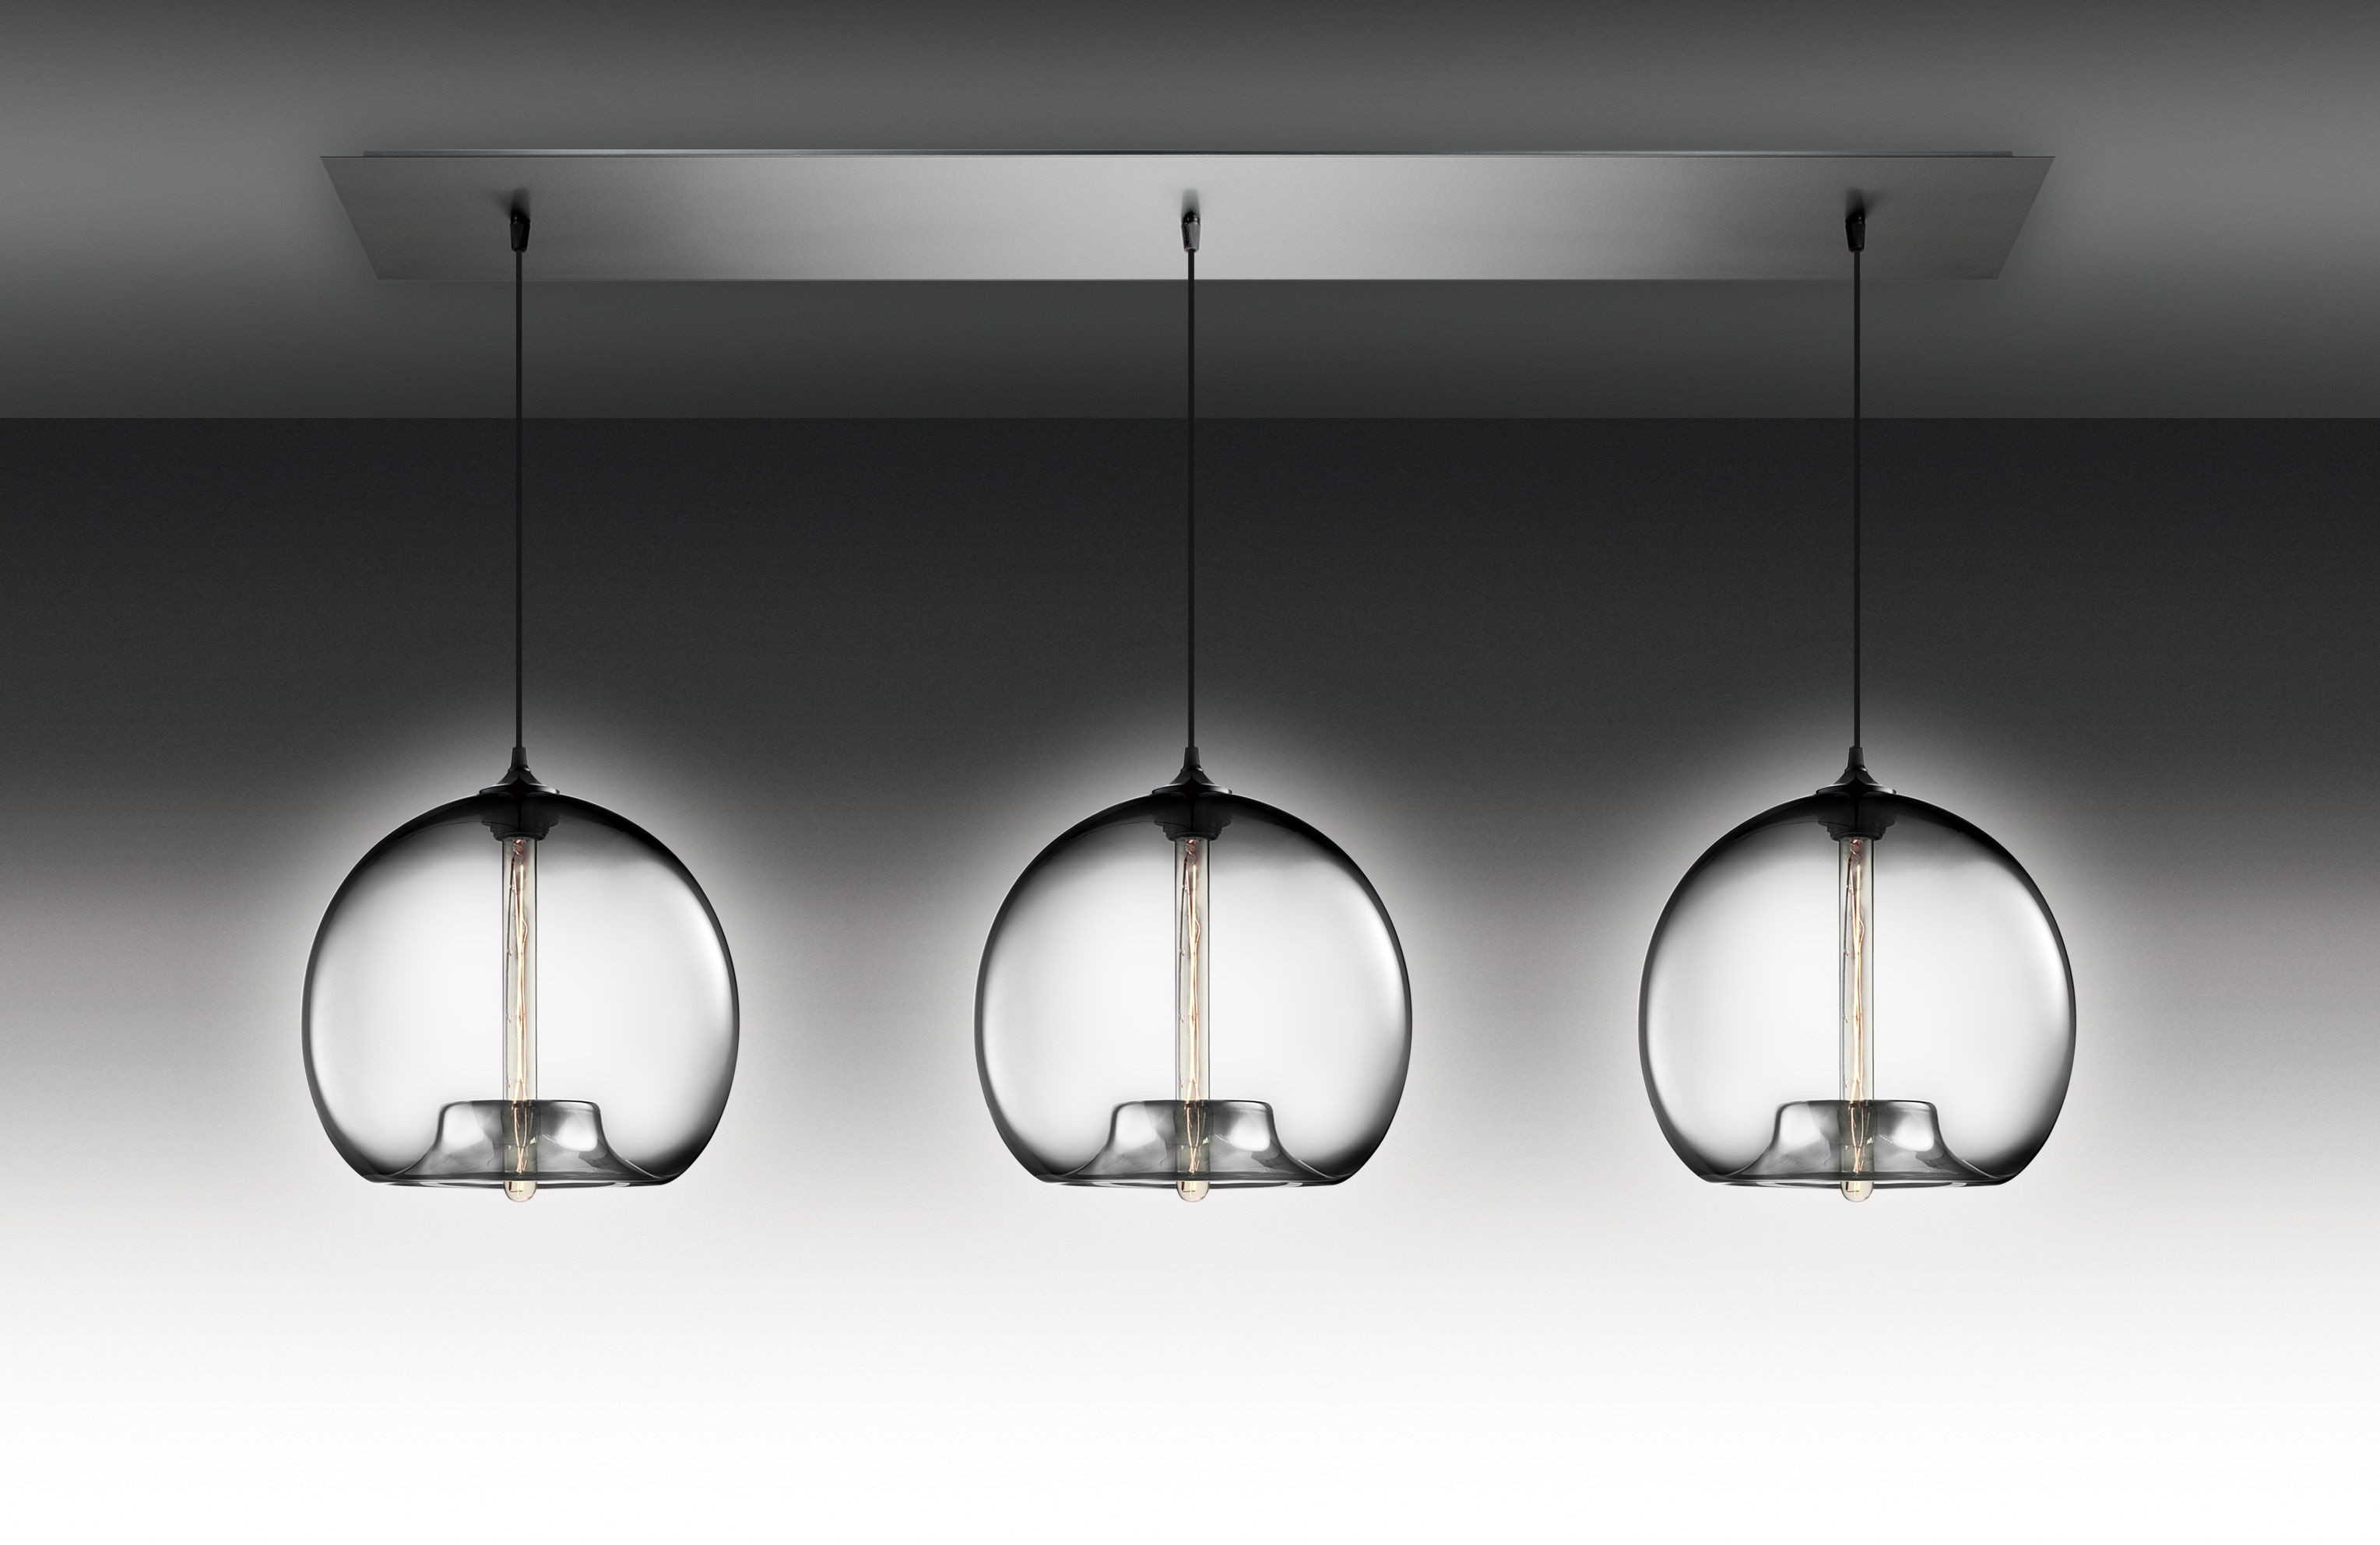 Exceptional Three Globe Clear Glass Covers Hanging Modern Ceiling ...